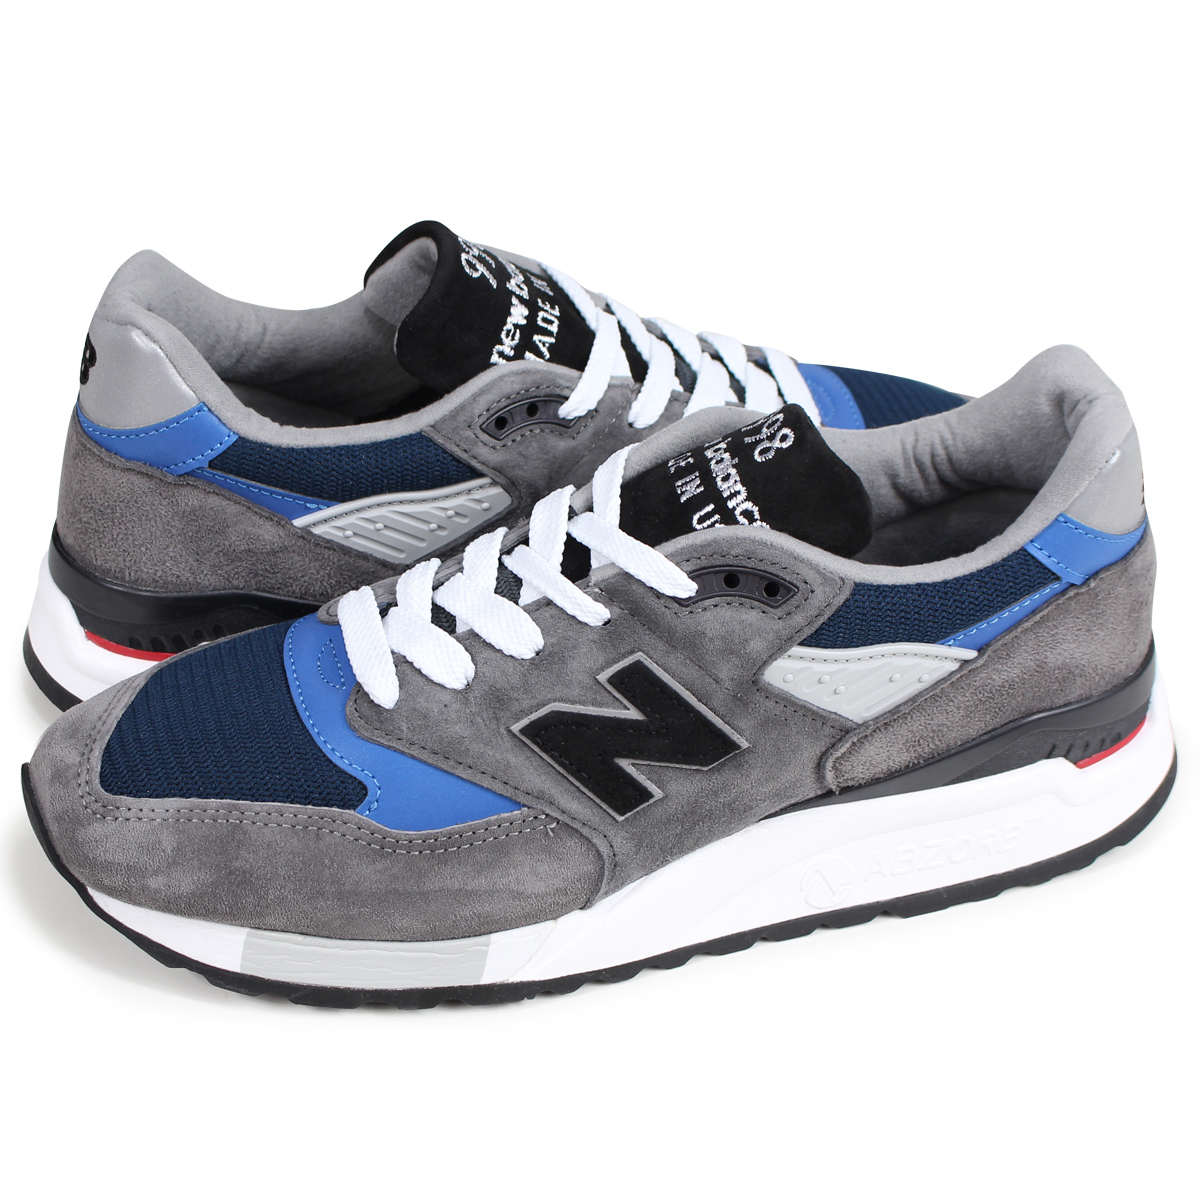 new balance M998NF New Balance 998 men's sneakers D Wise MADE IN USA gray [1017 reentry load]